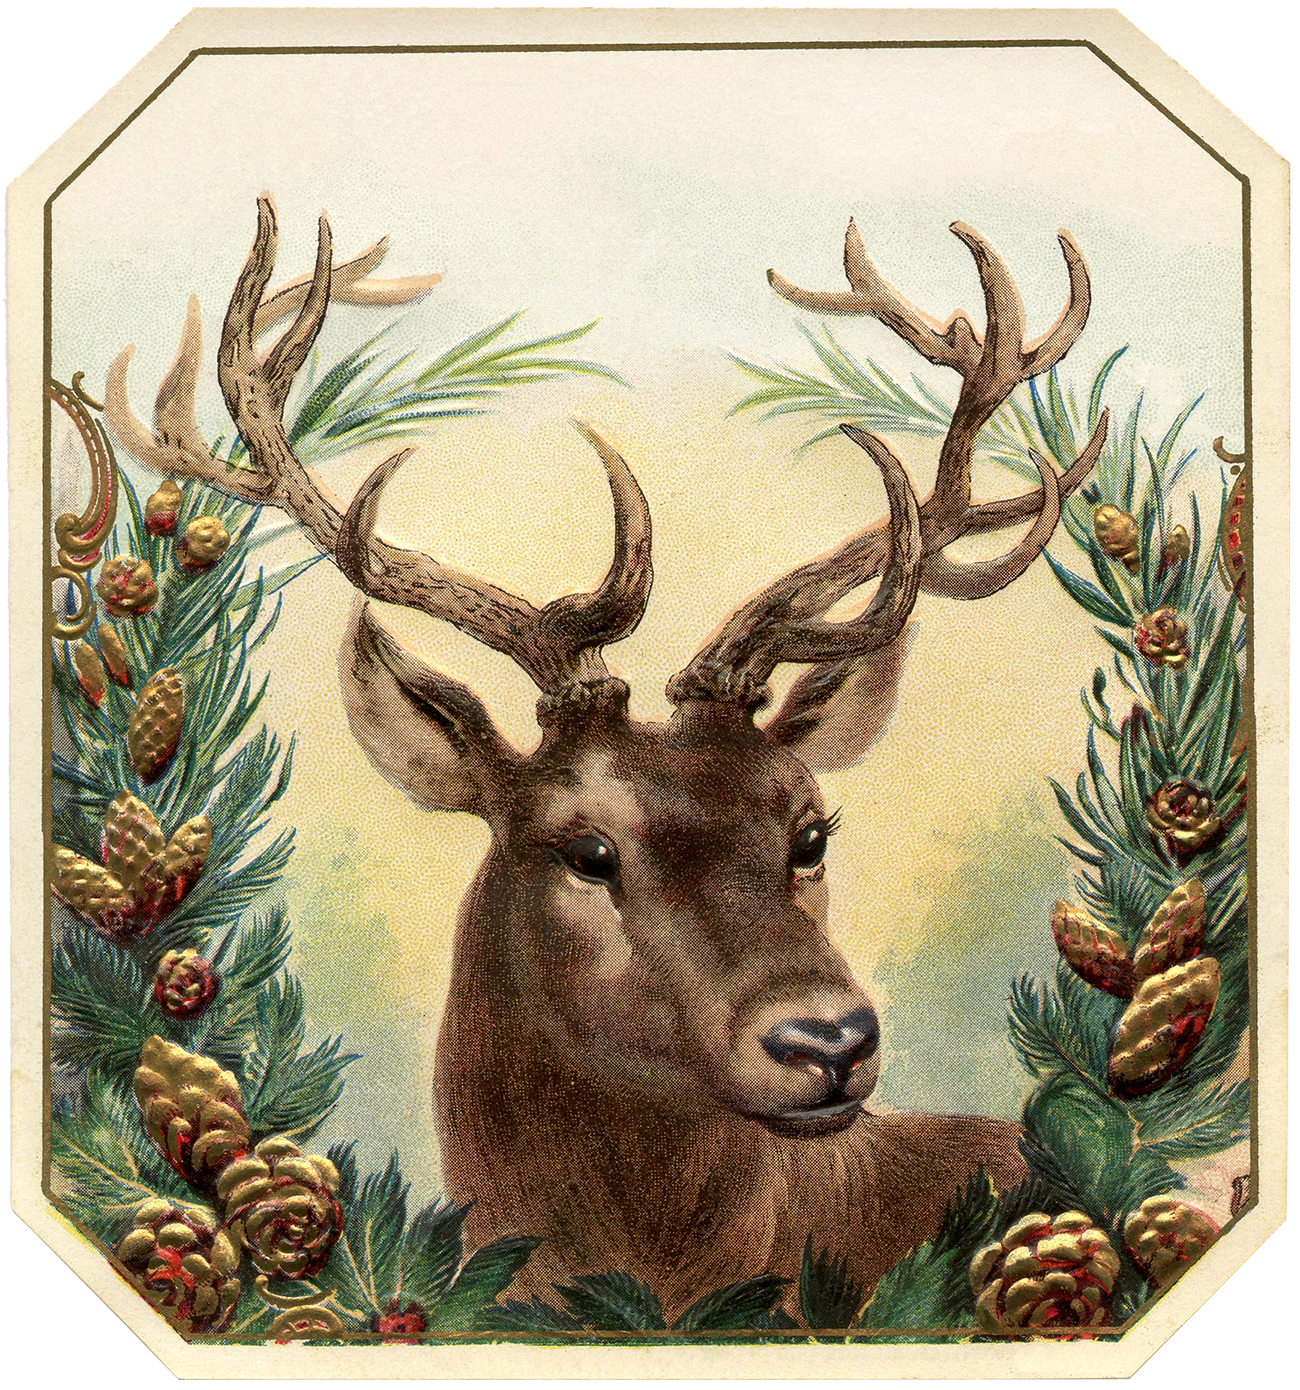 Vintage reindeer head clipart jpg black and white library 12+ Deer and Antlers Clipart! - The Graphics Fairy jpg black and white library